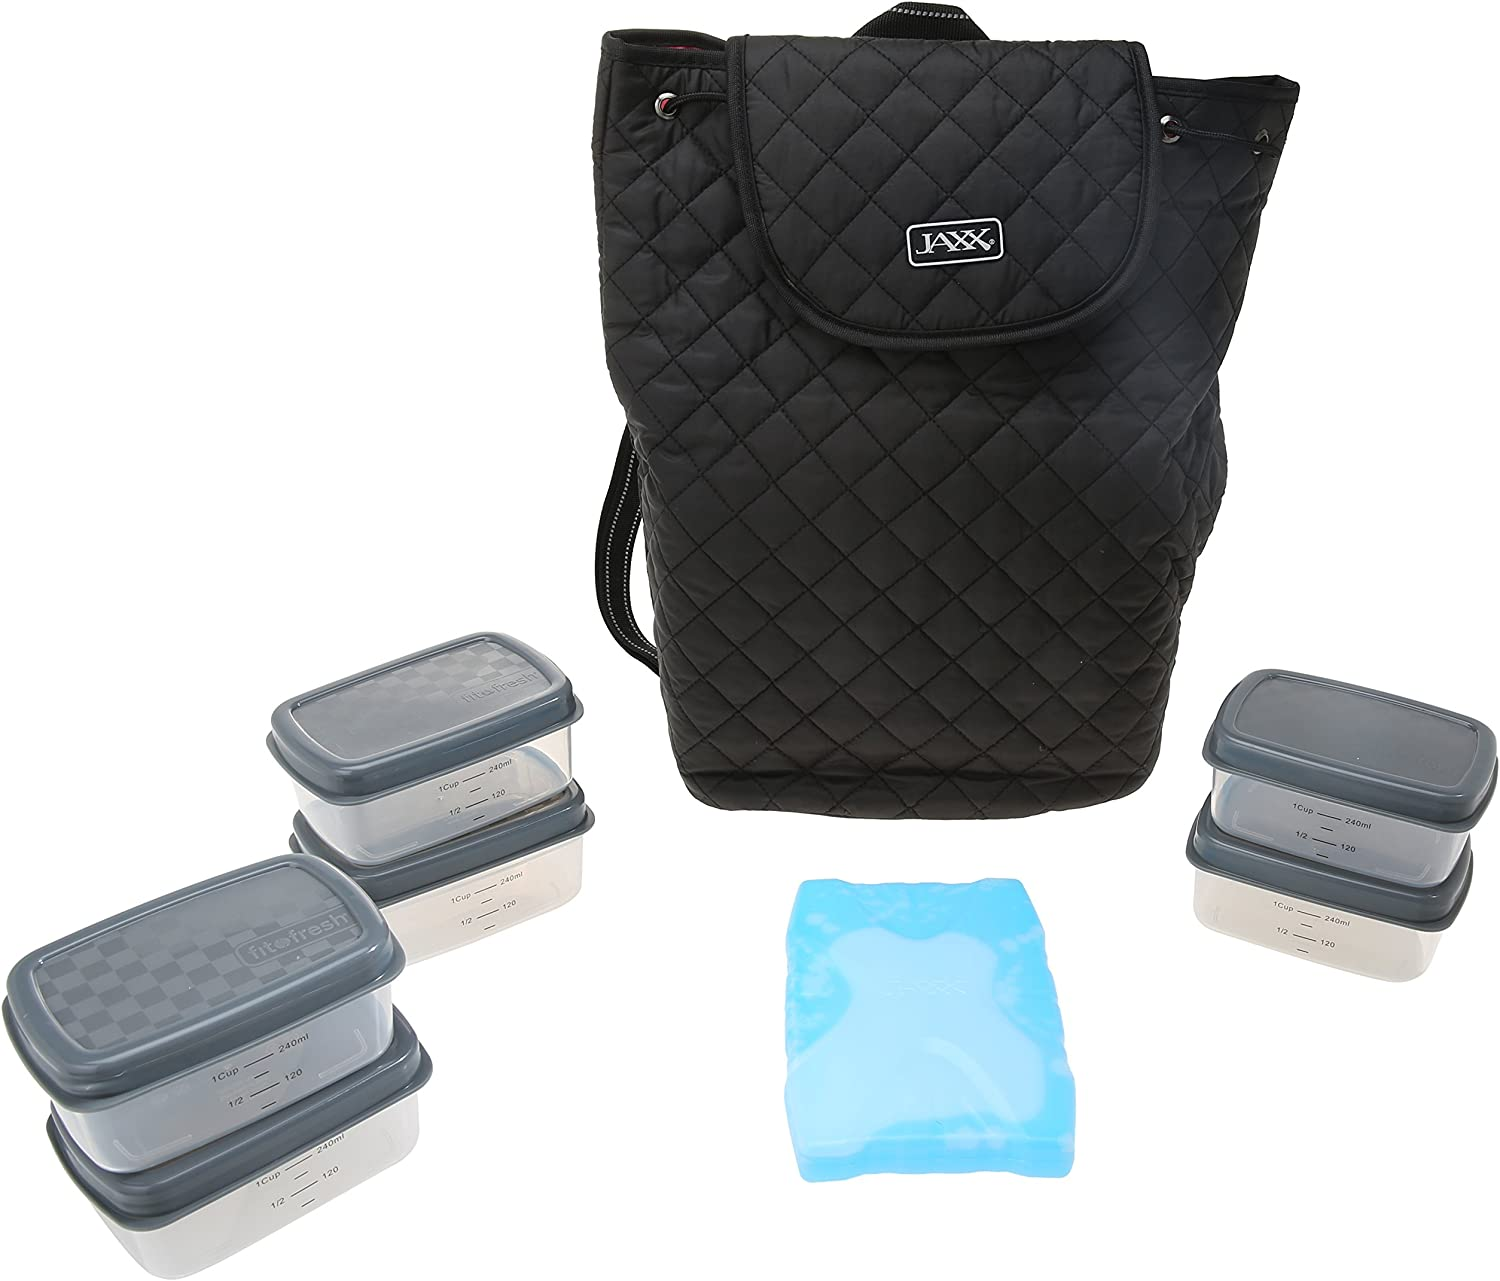 Fit & Fresh JAXX Black Quilted BACKPACK,Stylish Fitpak Meal Prep Set with Portion Control Containers, Ice Pack and Vitamin Case, Black